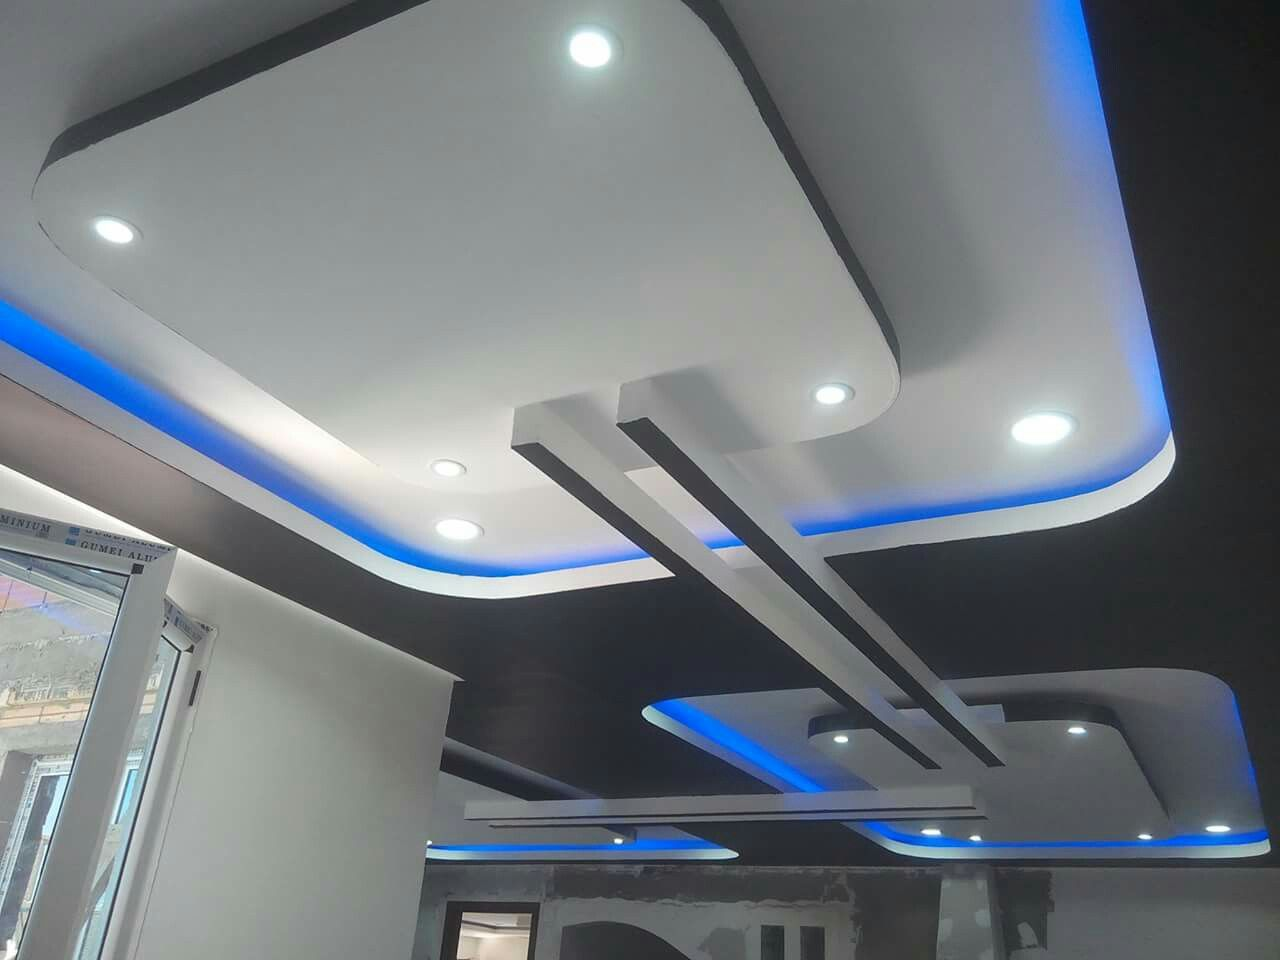 Uncategorized Pop Ceiling best 25 pop ceiling design ideas on pinterest false modern gypsum plasterboard ceilings cities modern